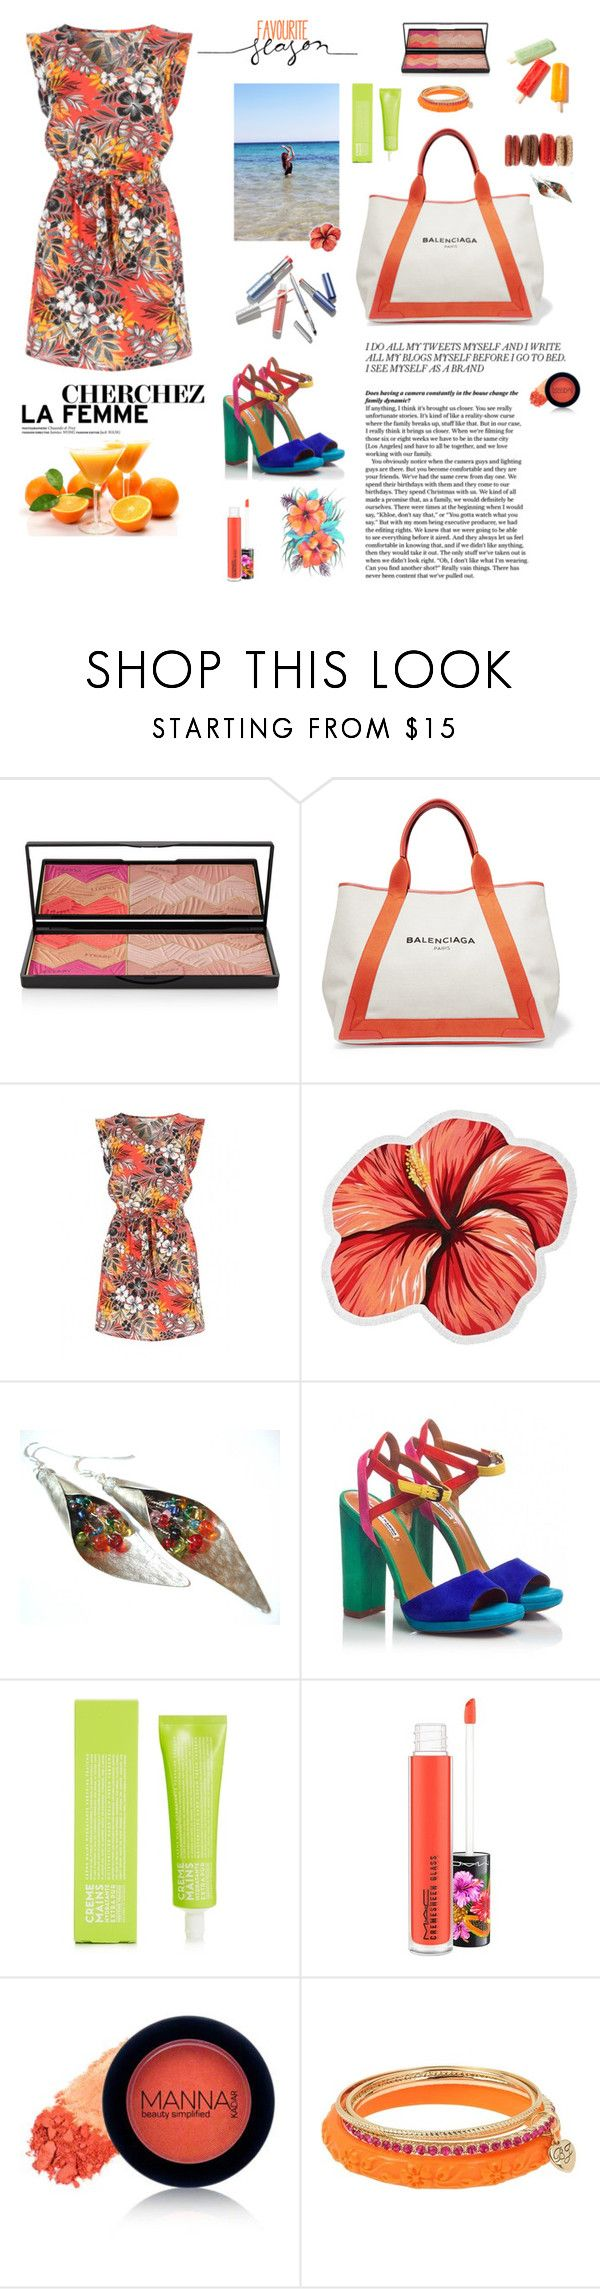 """""""tropic"""" by xexendes ❤ liked on Polyvore featuring By Terry, Balenciaga, LaMont, Fratelli Karida, La Compagnie de Provence, MAC Cosmetics, Manna Kadar Cosmetics and Betsey Johnson"""